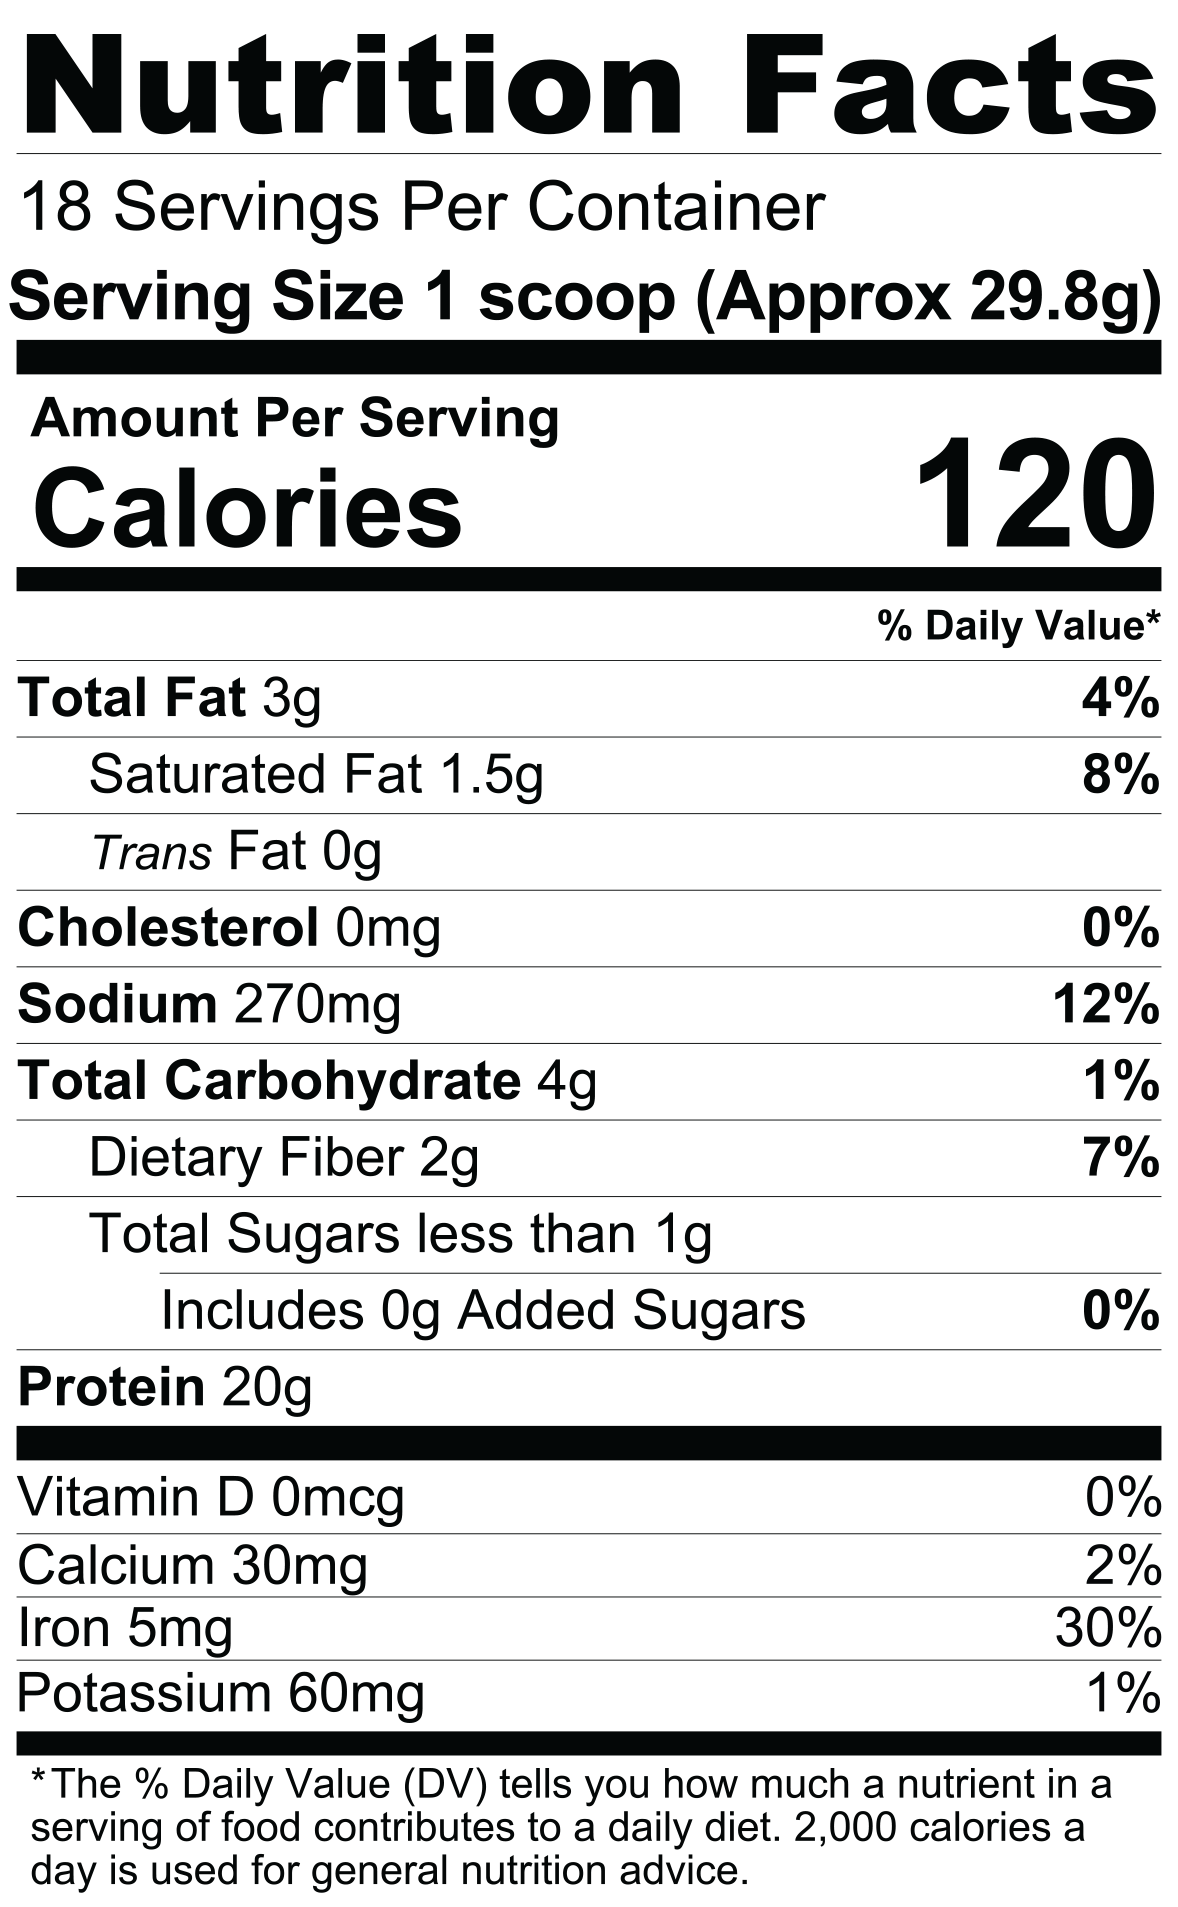 Nutrition Facts For Nutrex Plant Protein